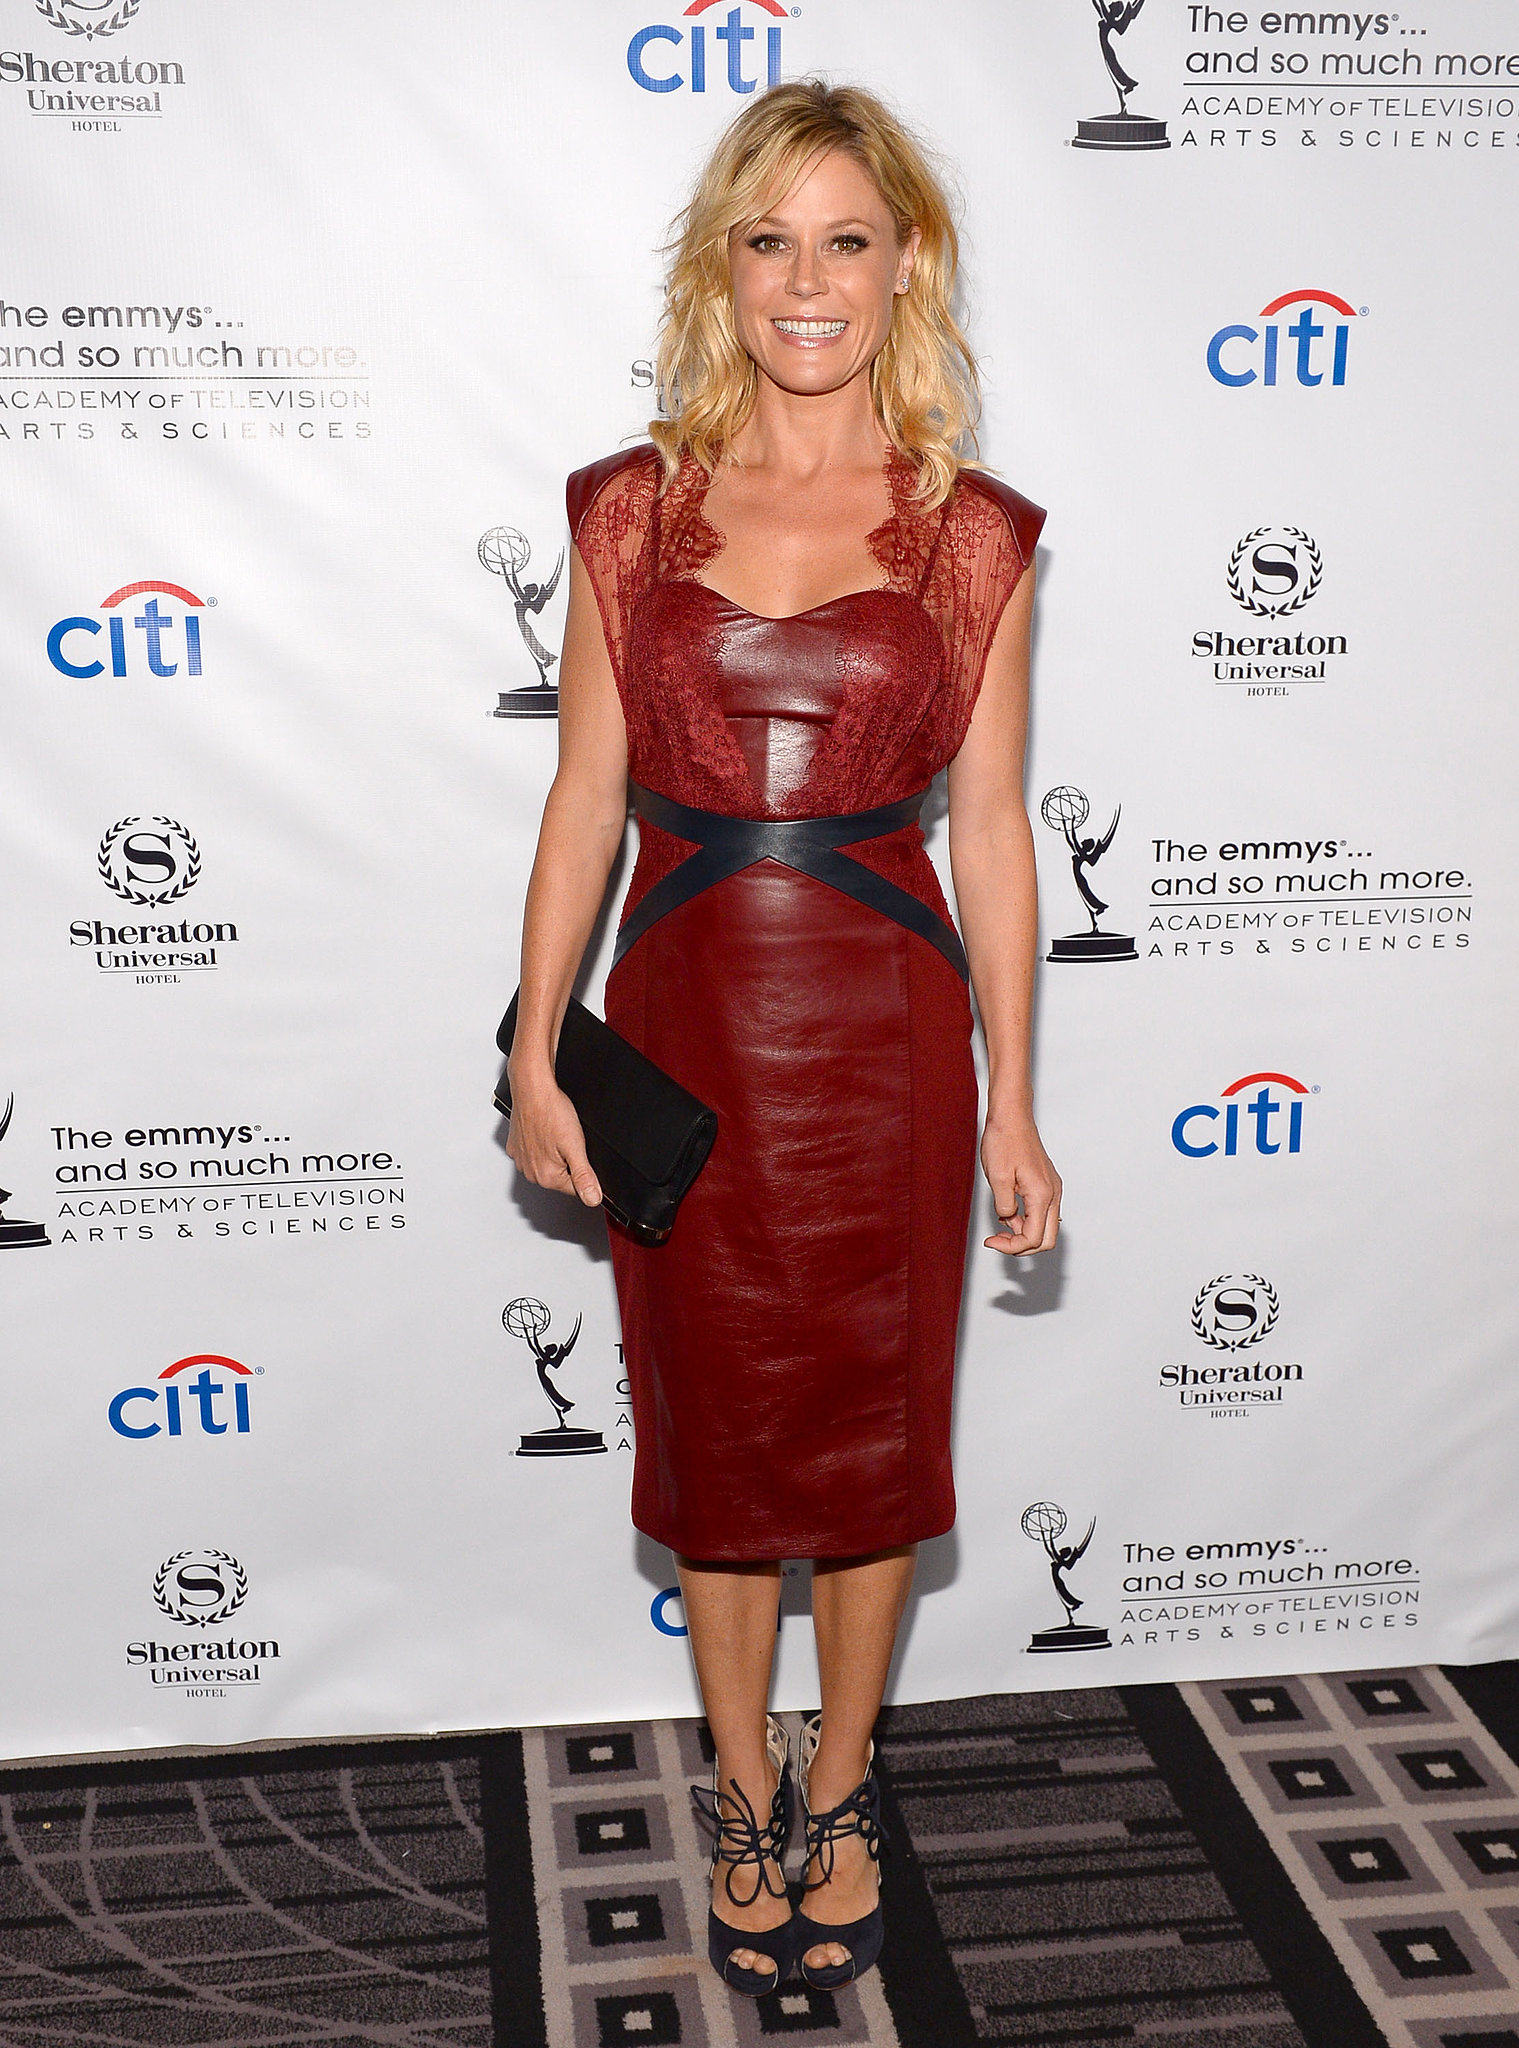 The Emmys' Biggest Names Catch Up For Cocktails and Celebrations